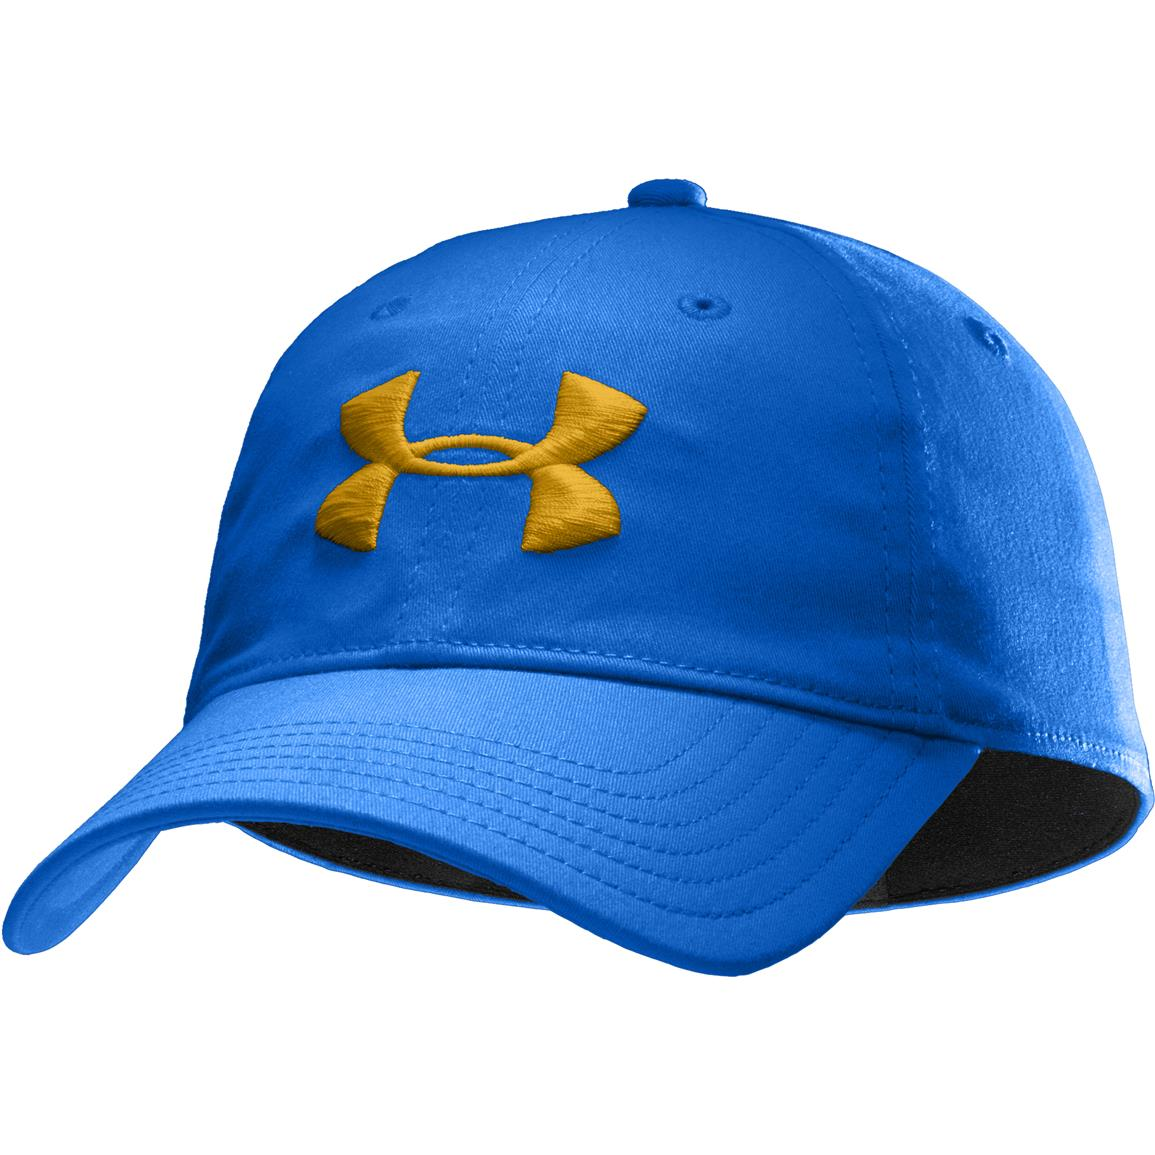 Under Armour Classic Outdoor Hat, Moonshadow